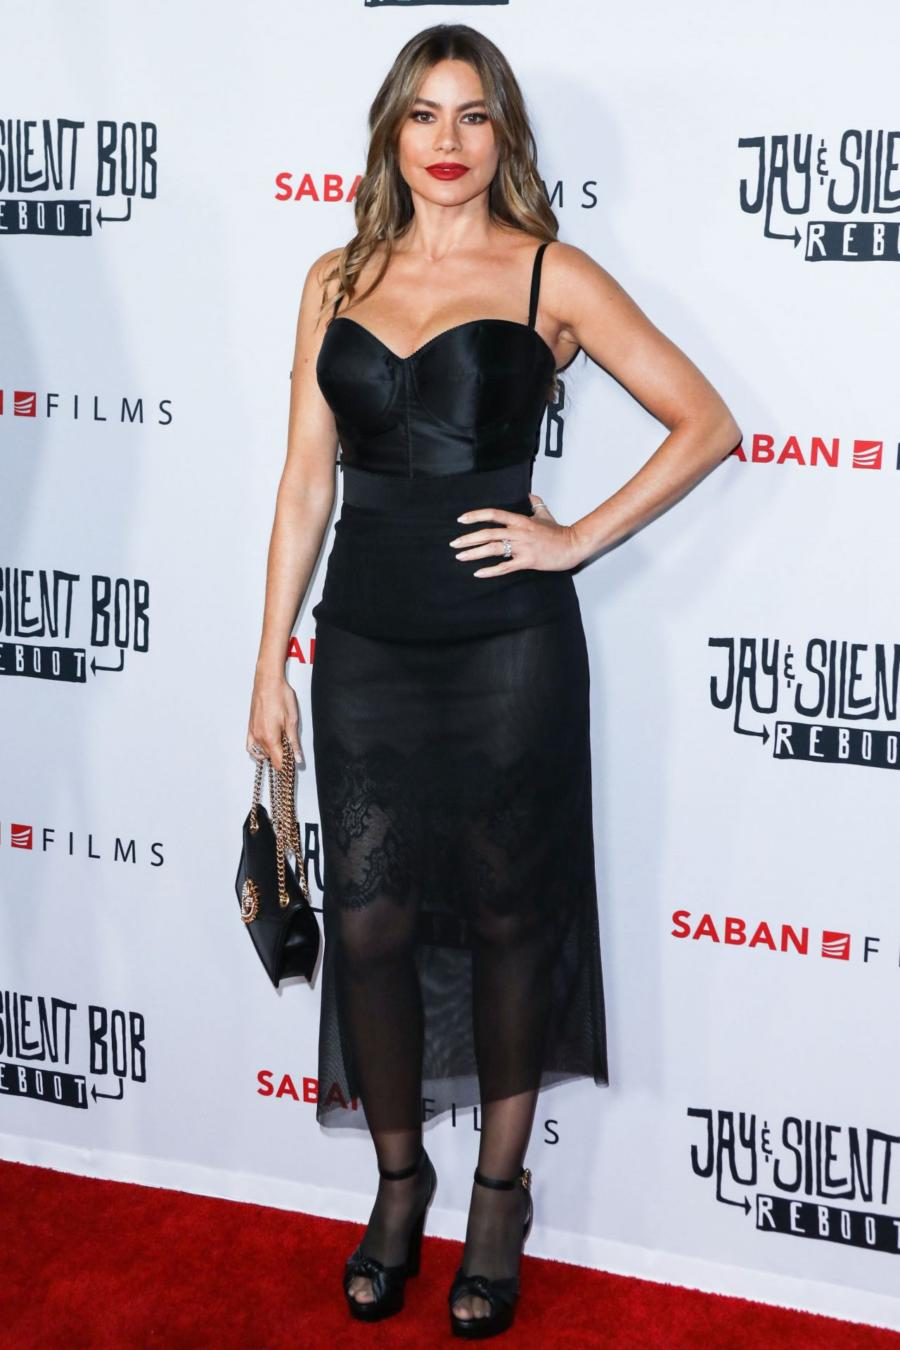 Sofia Vergara at Jay & Silent Bob Reboot Premiere in Hollywood